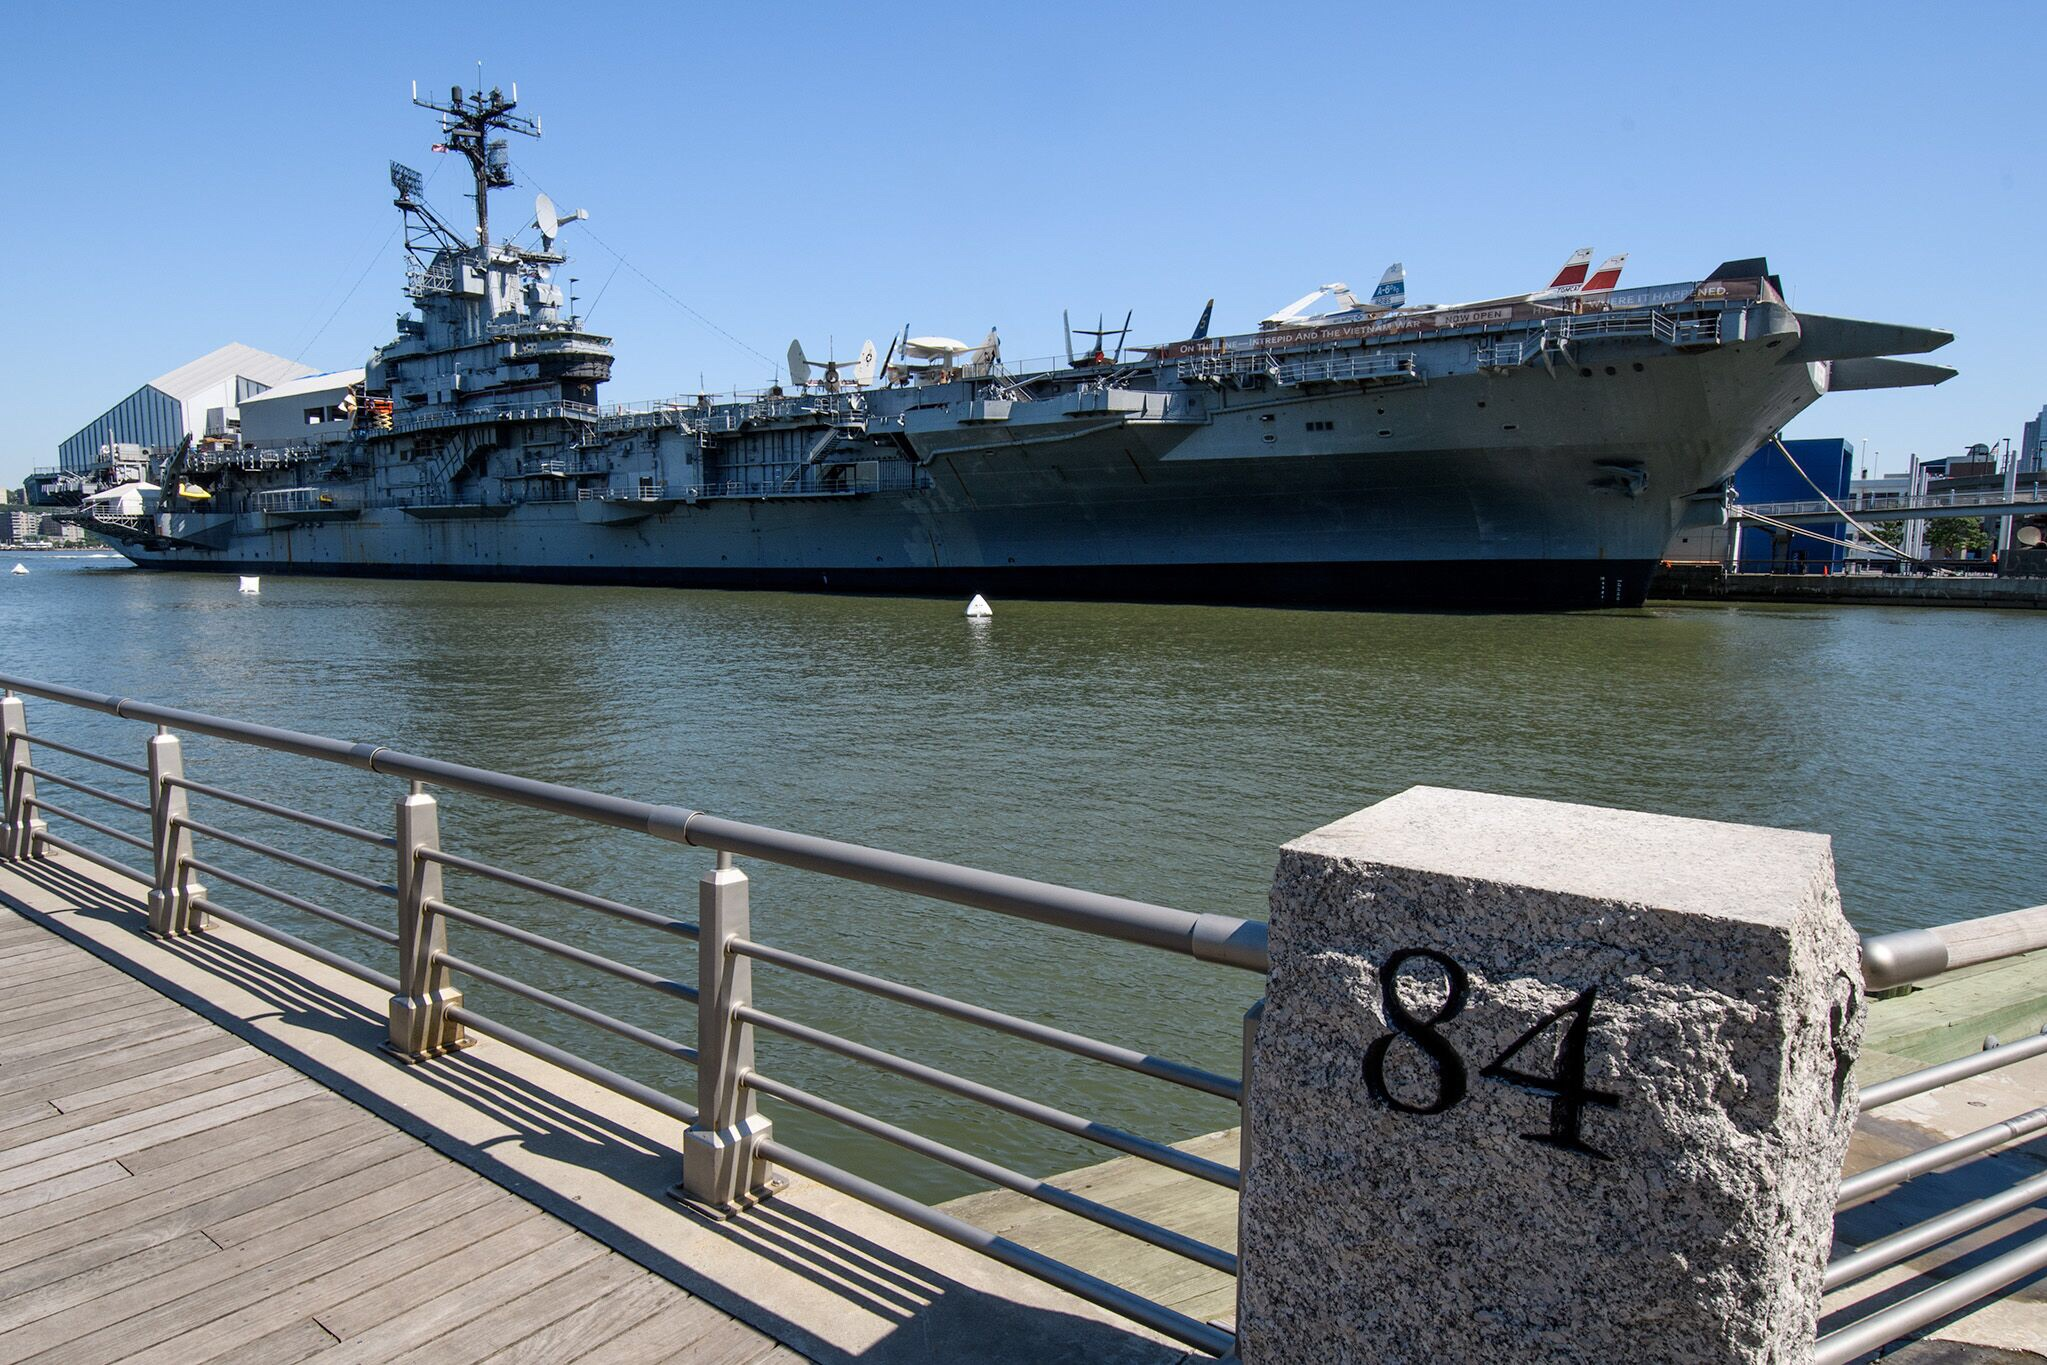 After joining the Hudson River Greenway, we came upon the Intrepid Museum, located on an aircraft carrier.